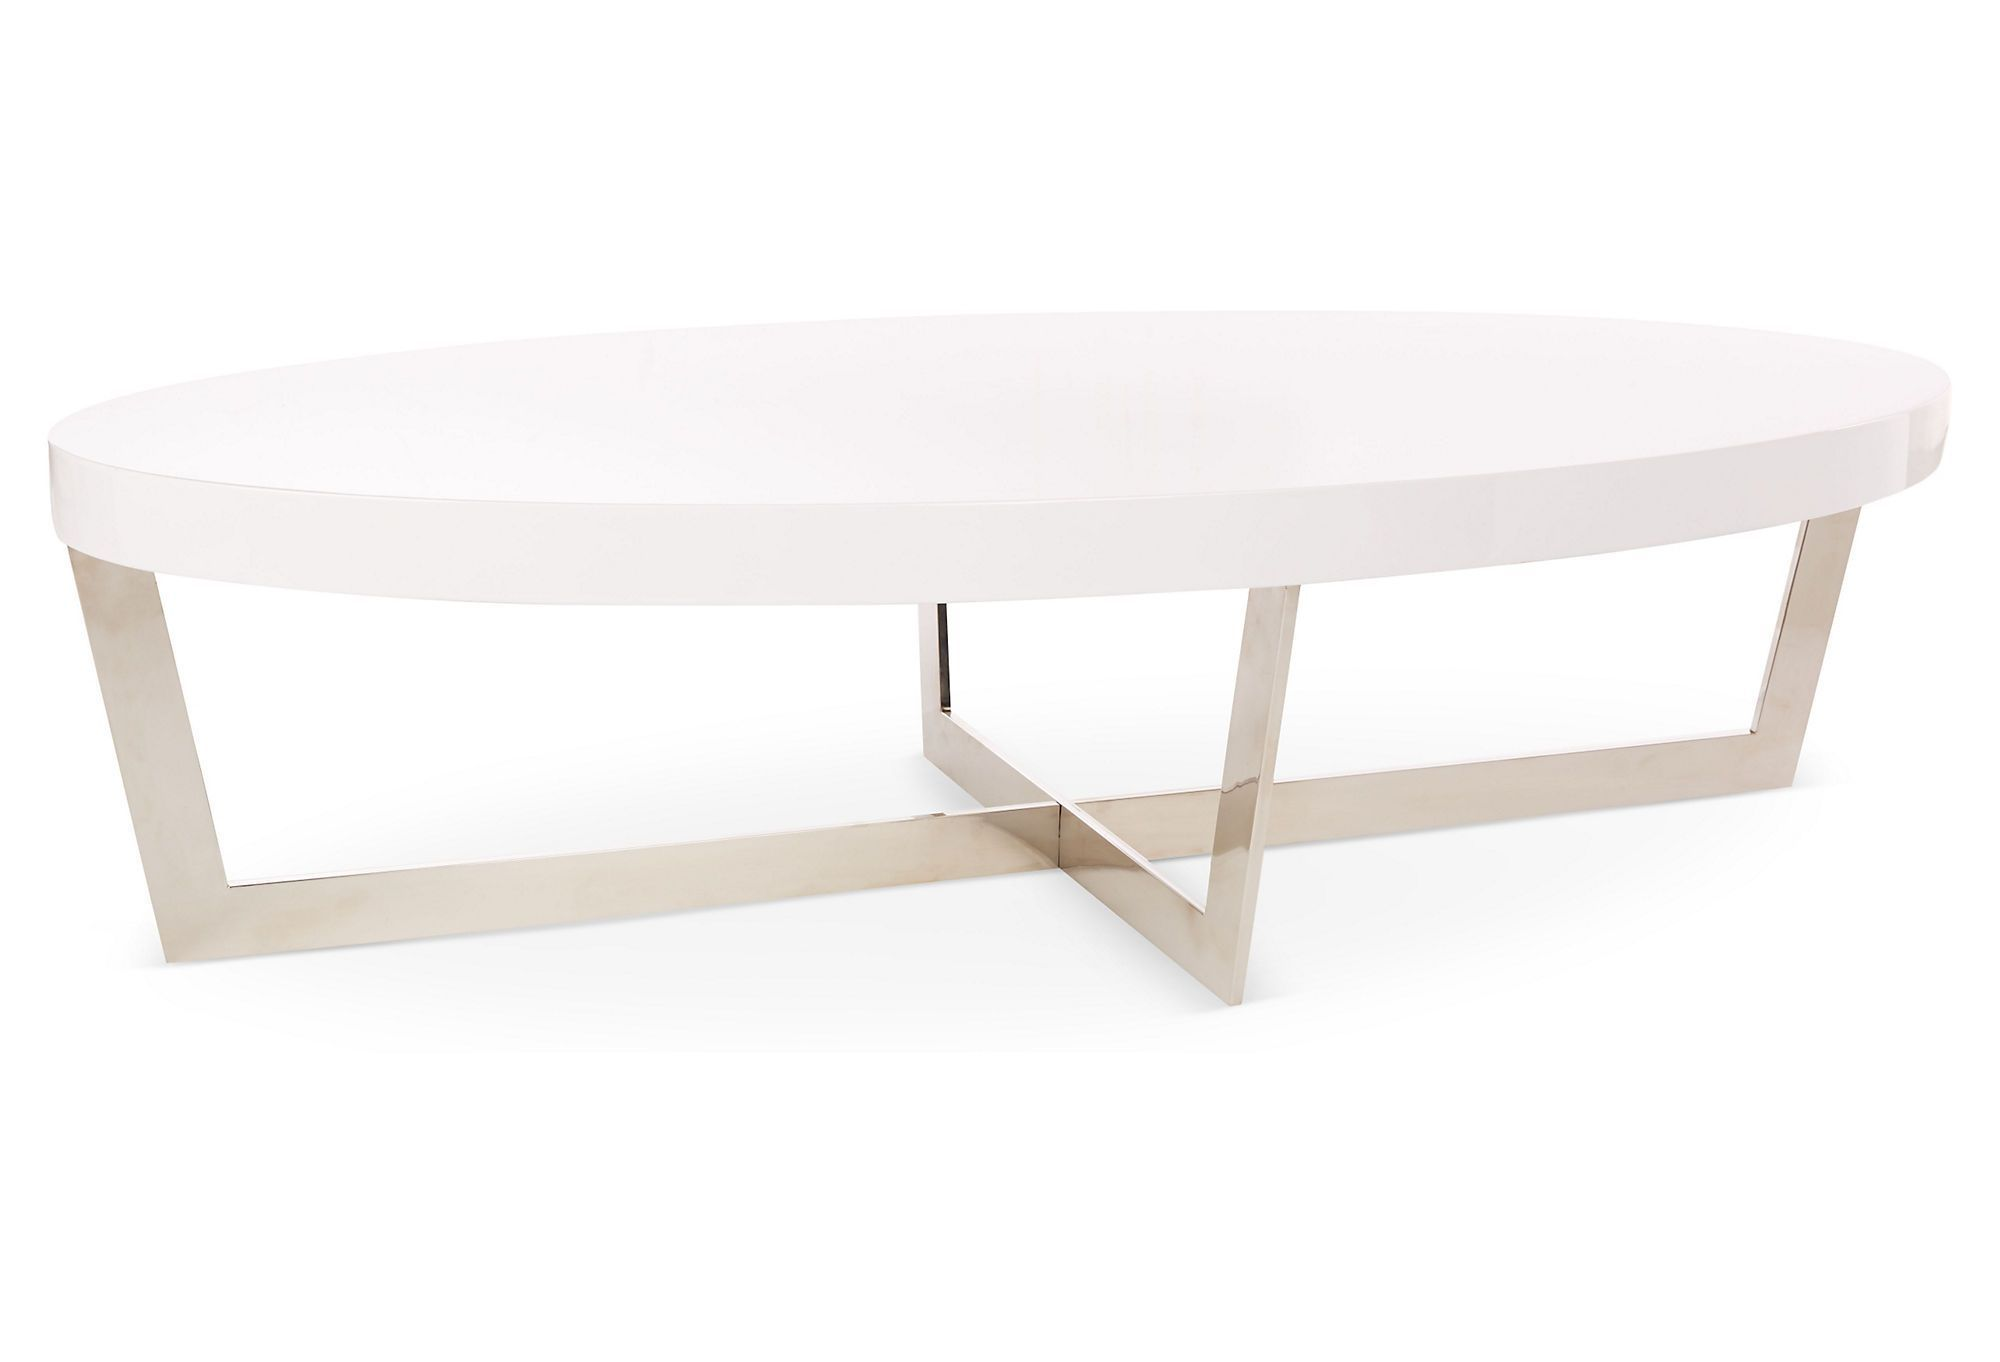 Sleek, Unfussy, But Definitely Eye Catching, This Coffee Table Contrasts Curves